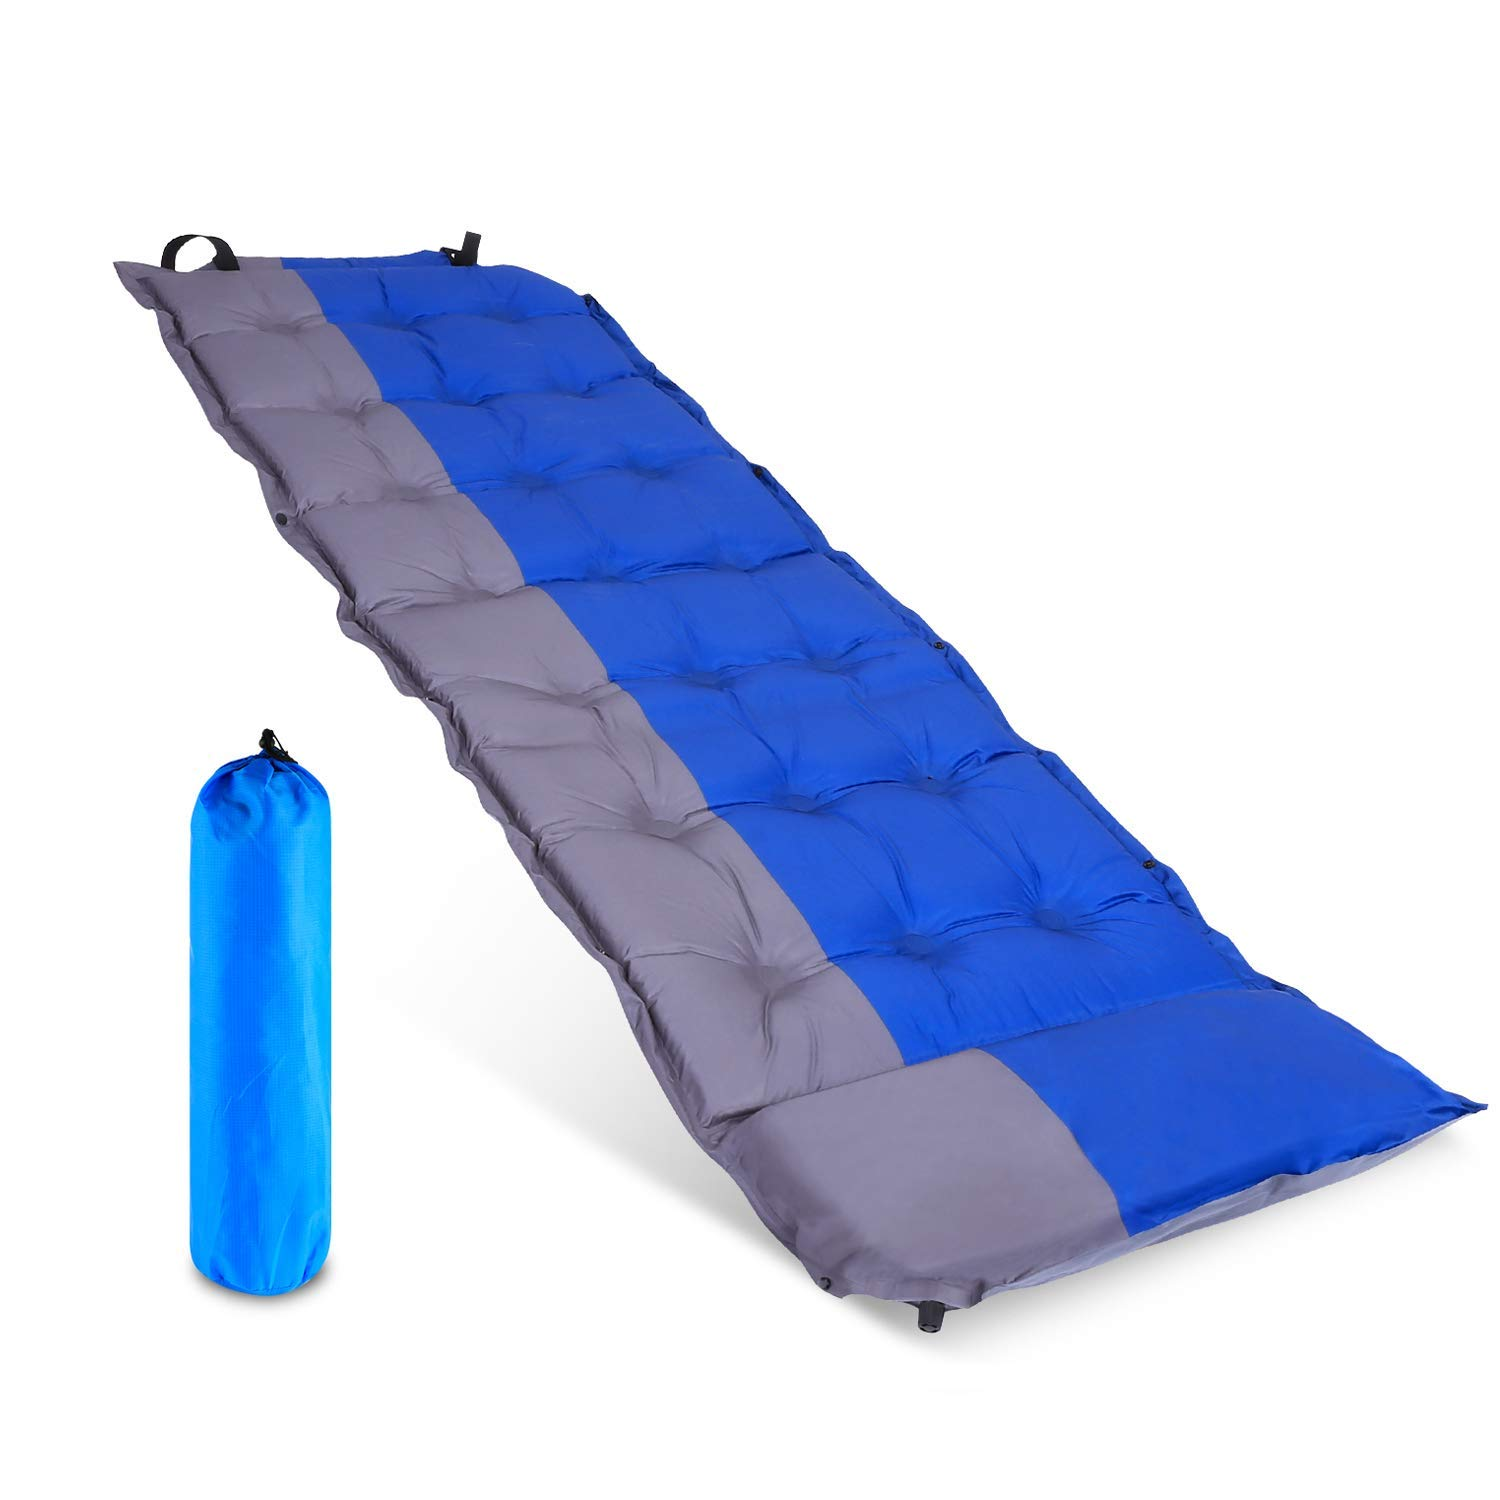 Sleeping Pad with Attached Pillow, Self Inflating Sleeping with Backpacking Pad, Hiking Lightweight Inflatable Foam Padding Sleeping Mat for Camping Backpacking Hiking [並行輸入品] B07R3Y735K, 管楽器のマールミュージック:40e01345 --- anime-portal.club